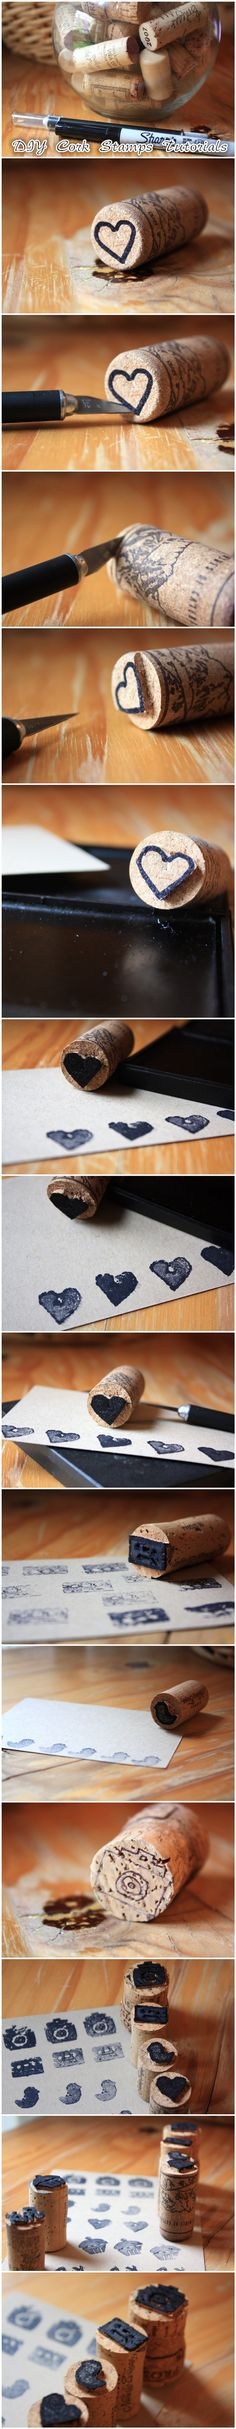 #DIY Cork Stamp #Tutorials I wish I was crafty!